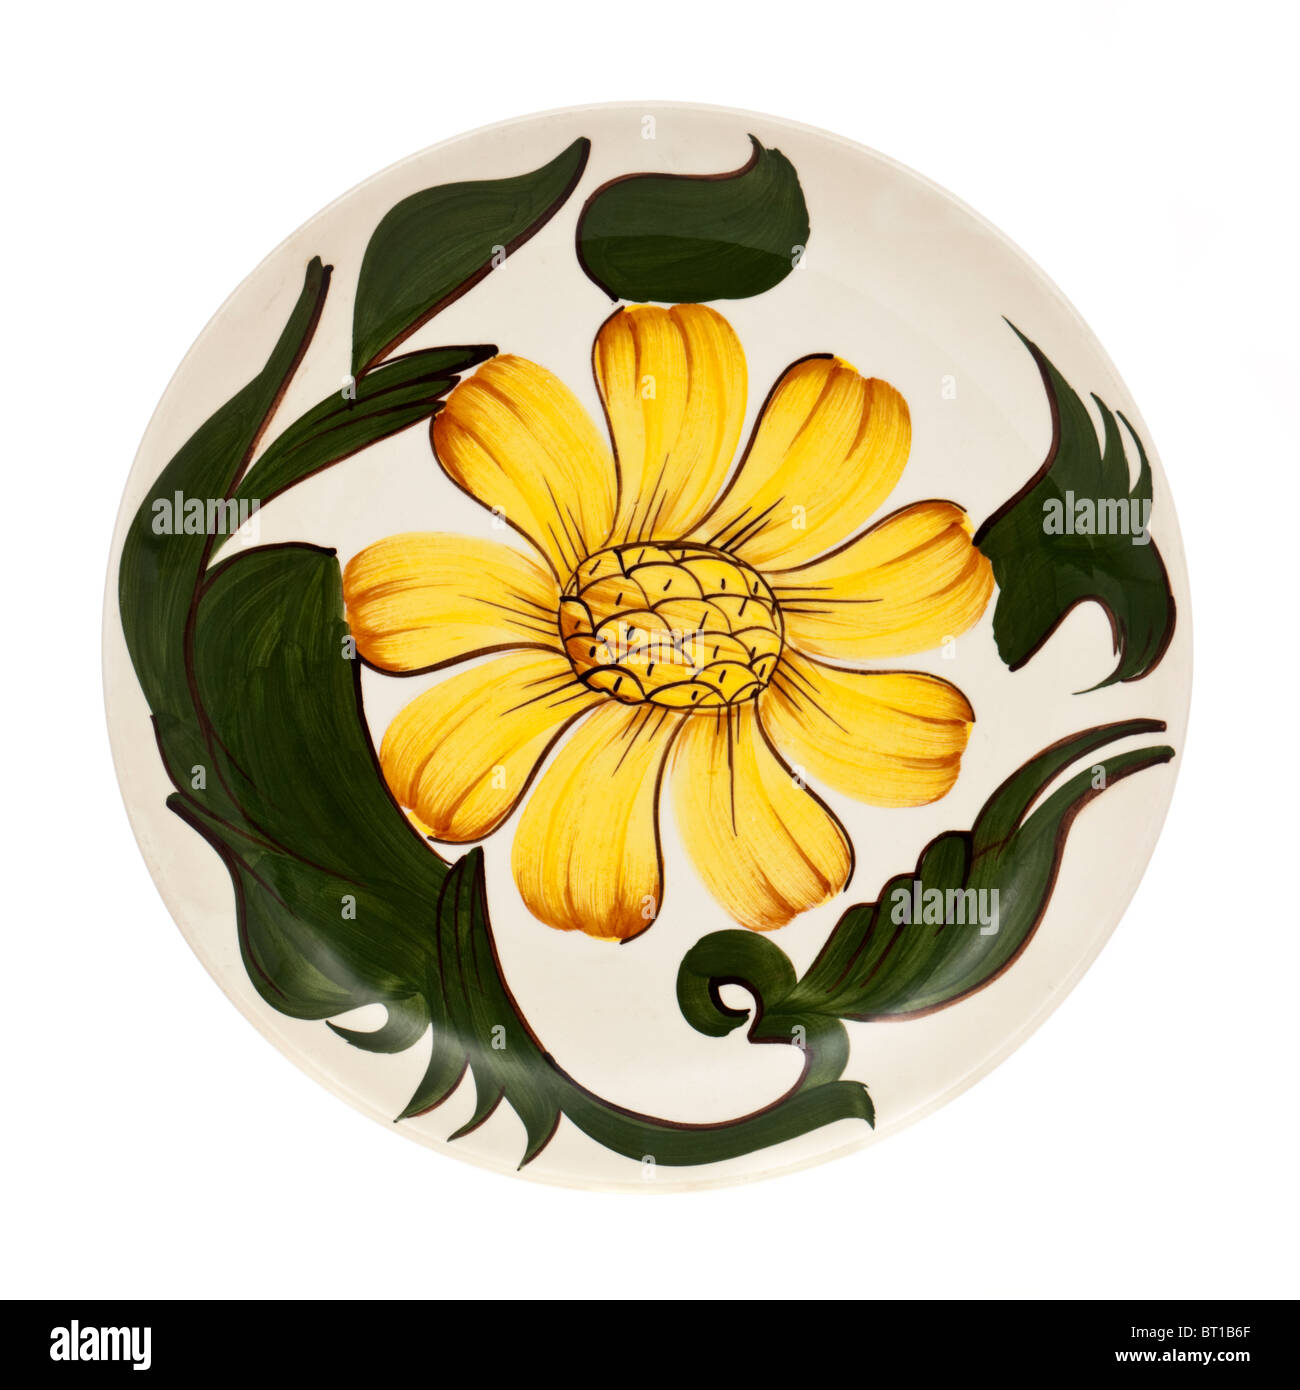 Vintage Wade ceramic hand painted sunflower plate - Stock Image